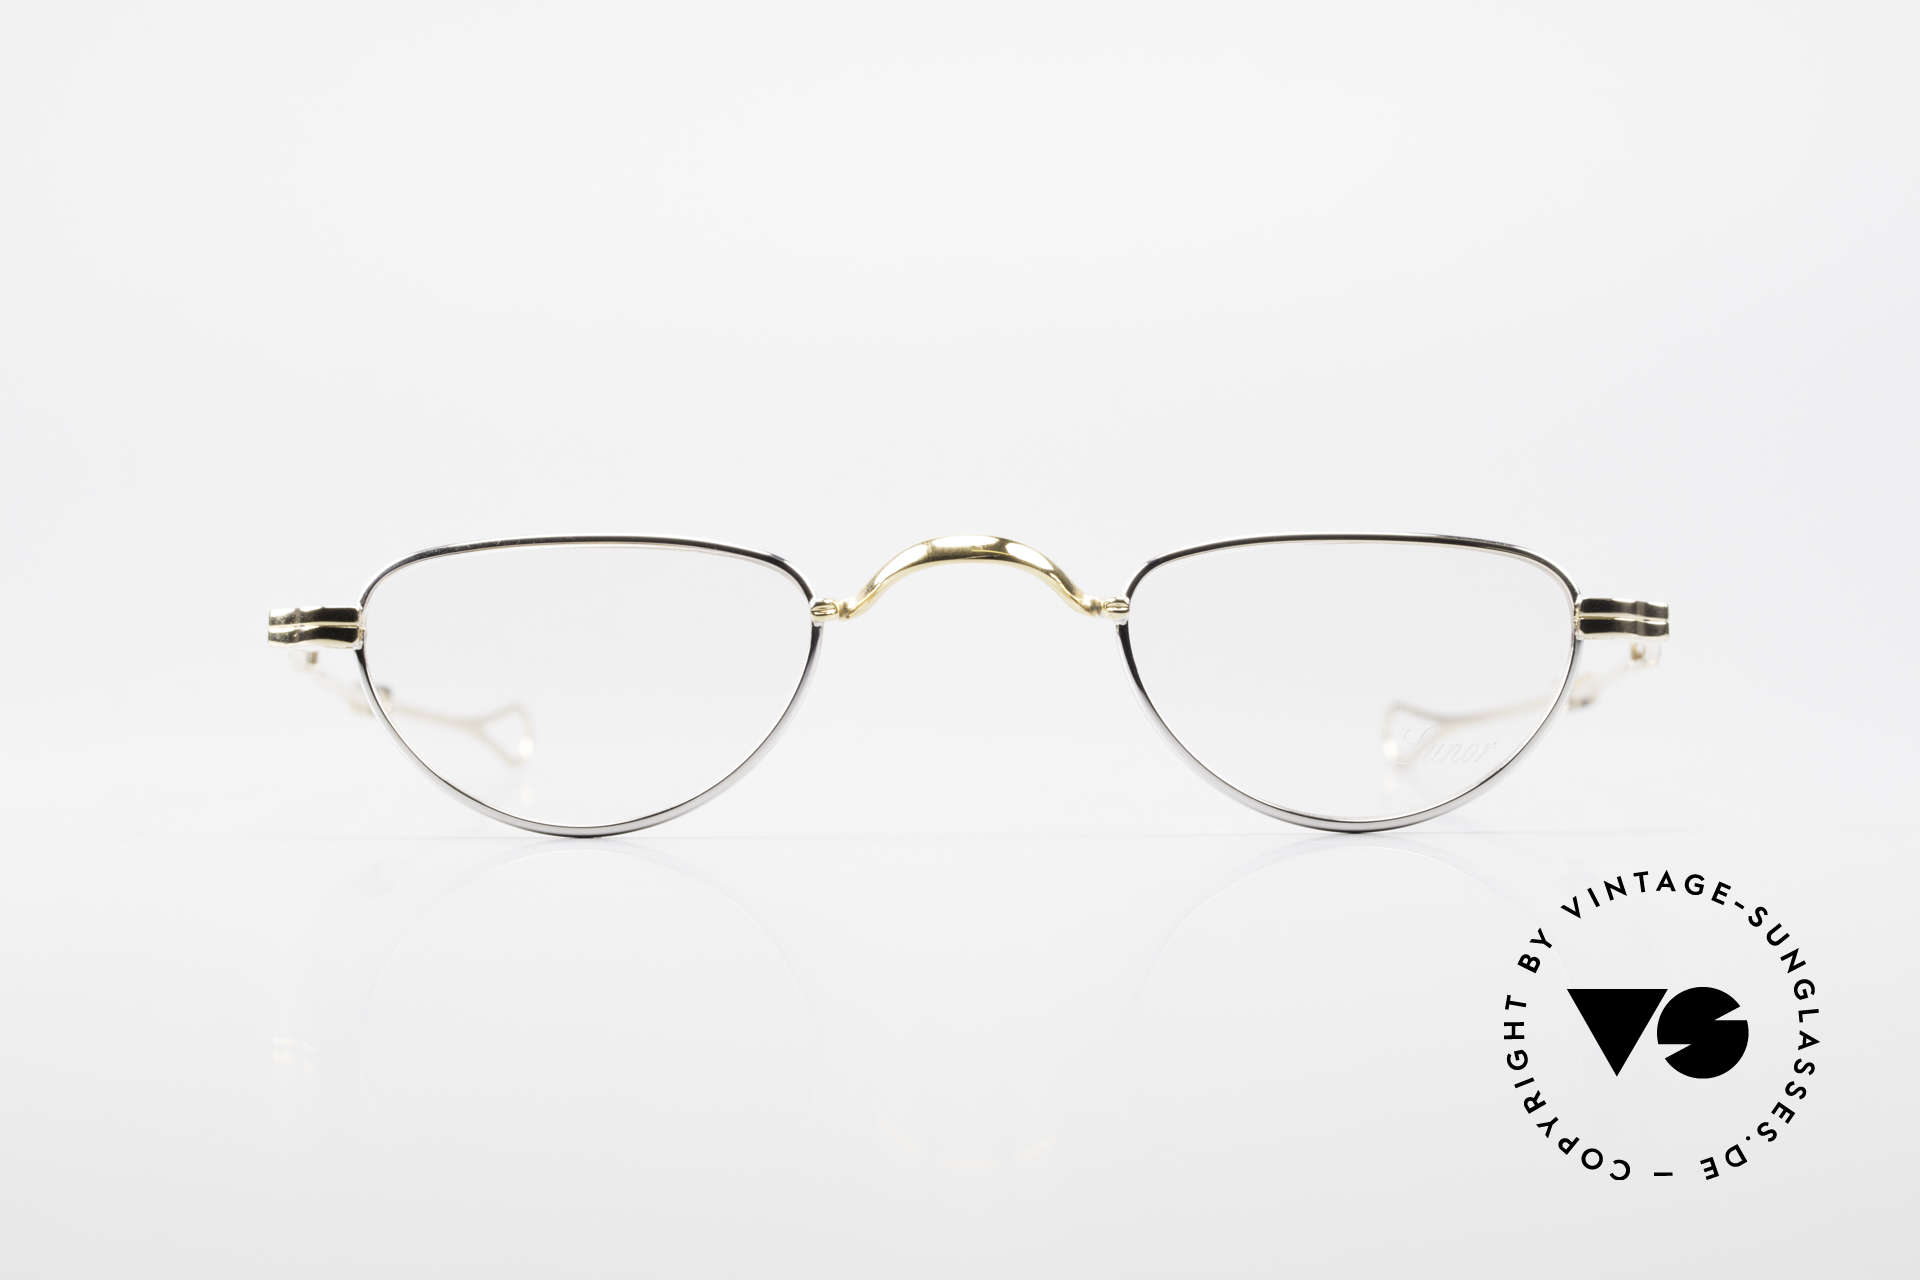 Lunor I 06 Telescopic Extendable Reading Frame, traditional German brand; quality handmade in Germany, Made for Men and Women